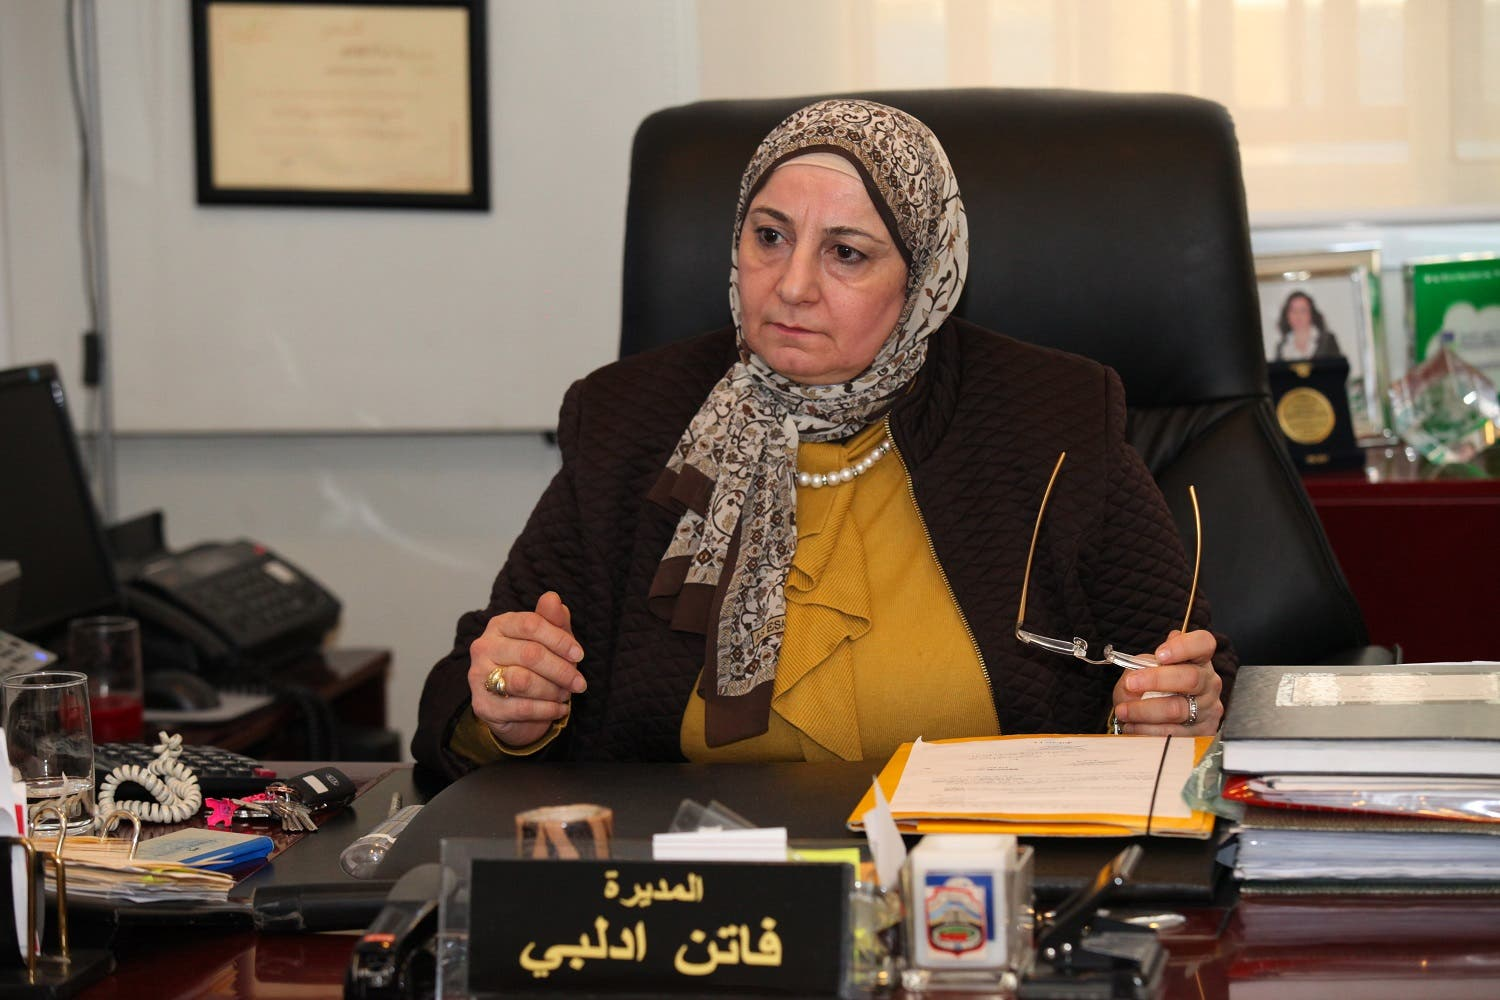 Beirut's Mohammed Shamel Public School director, Faten Edlby (Photo: Roudy Lattouf)